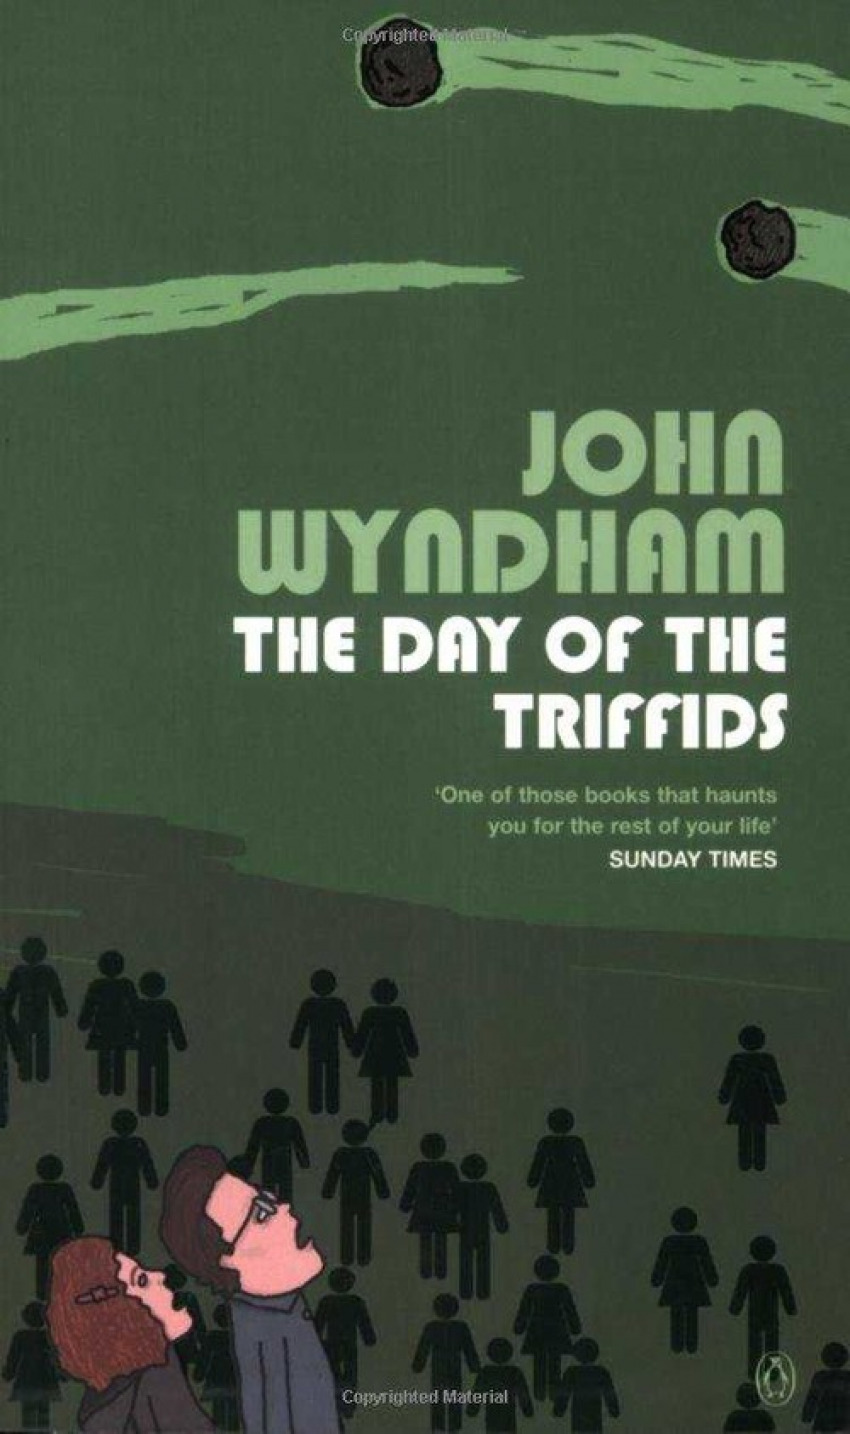 (wyndham)/day of the triffids pen